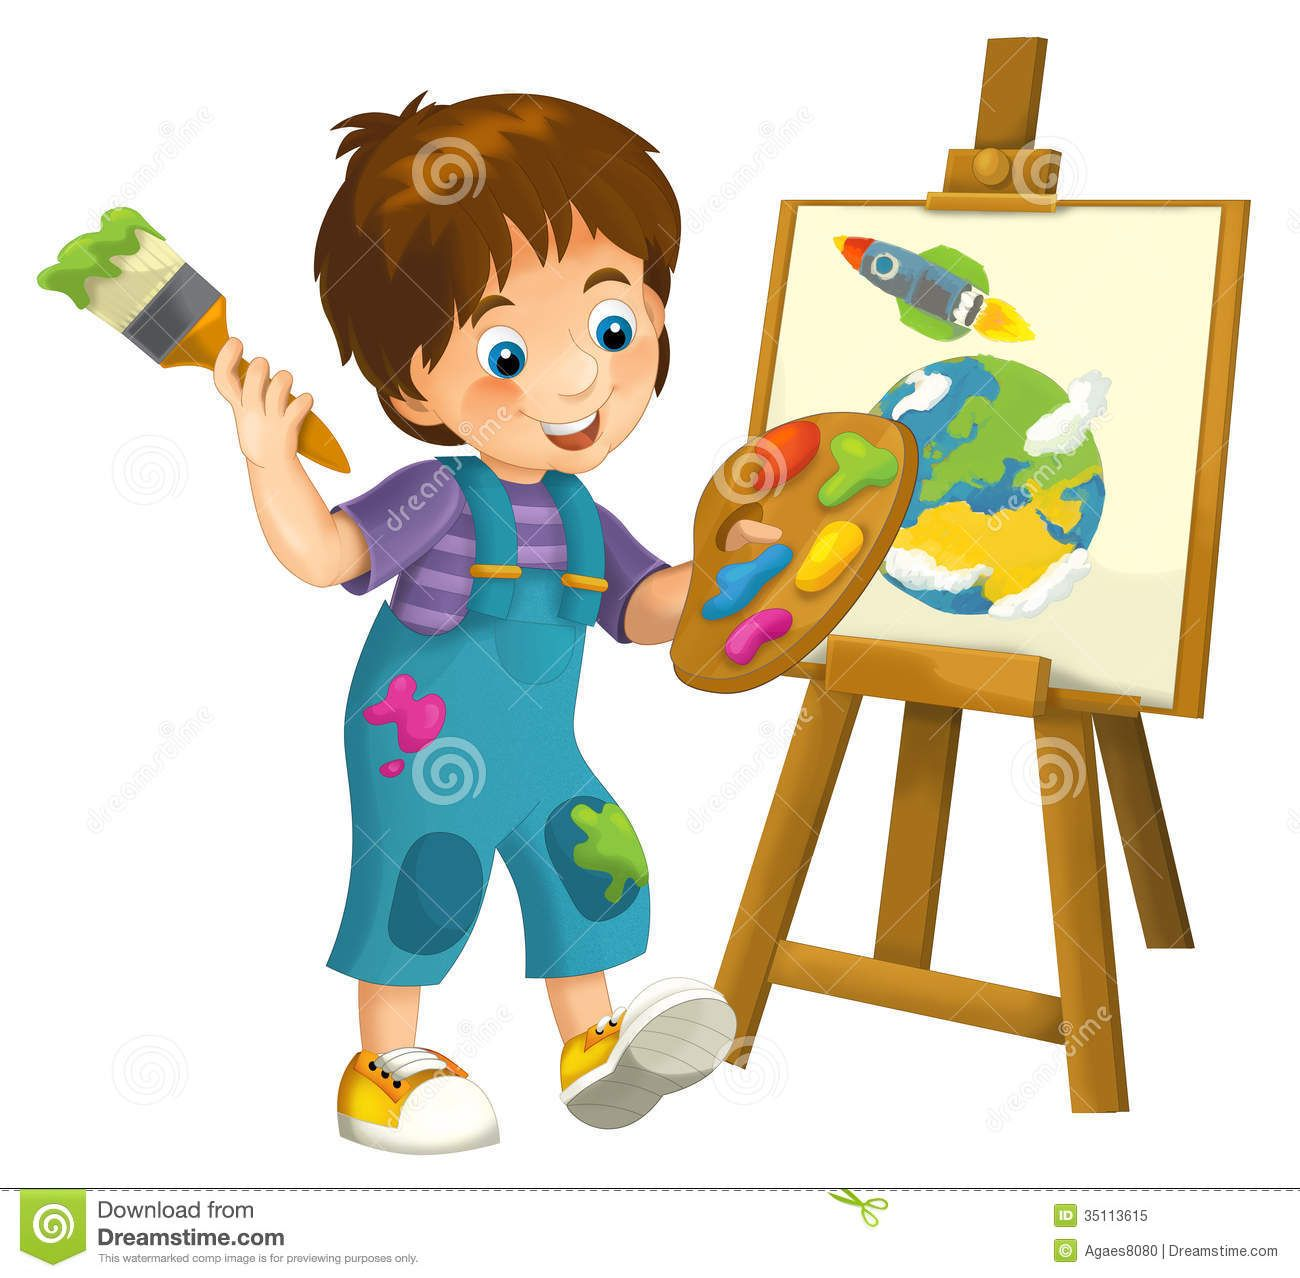 free stock photo cartoon child illustration